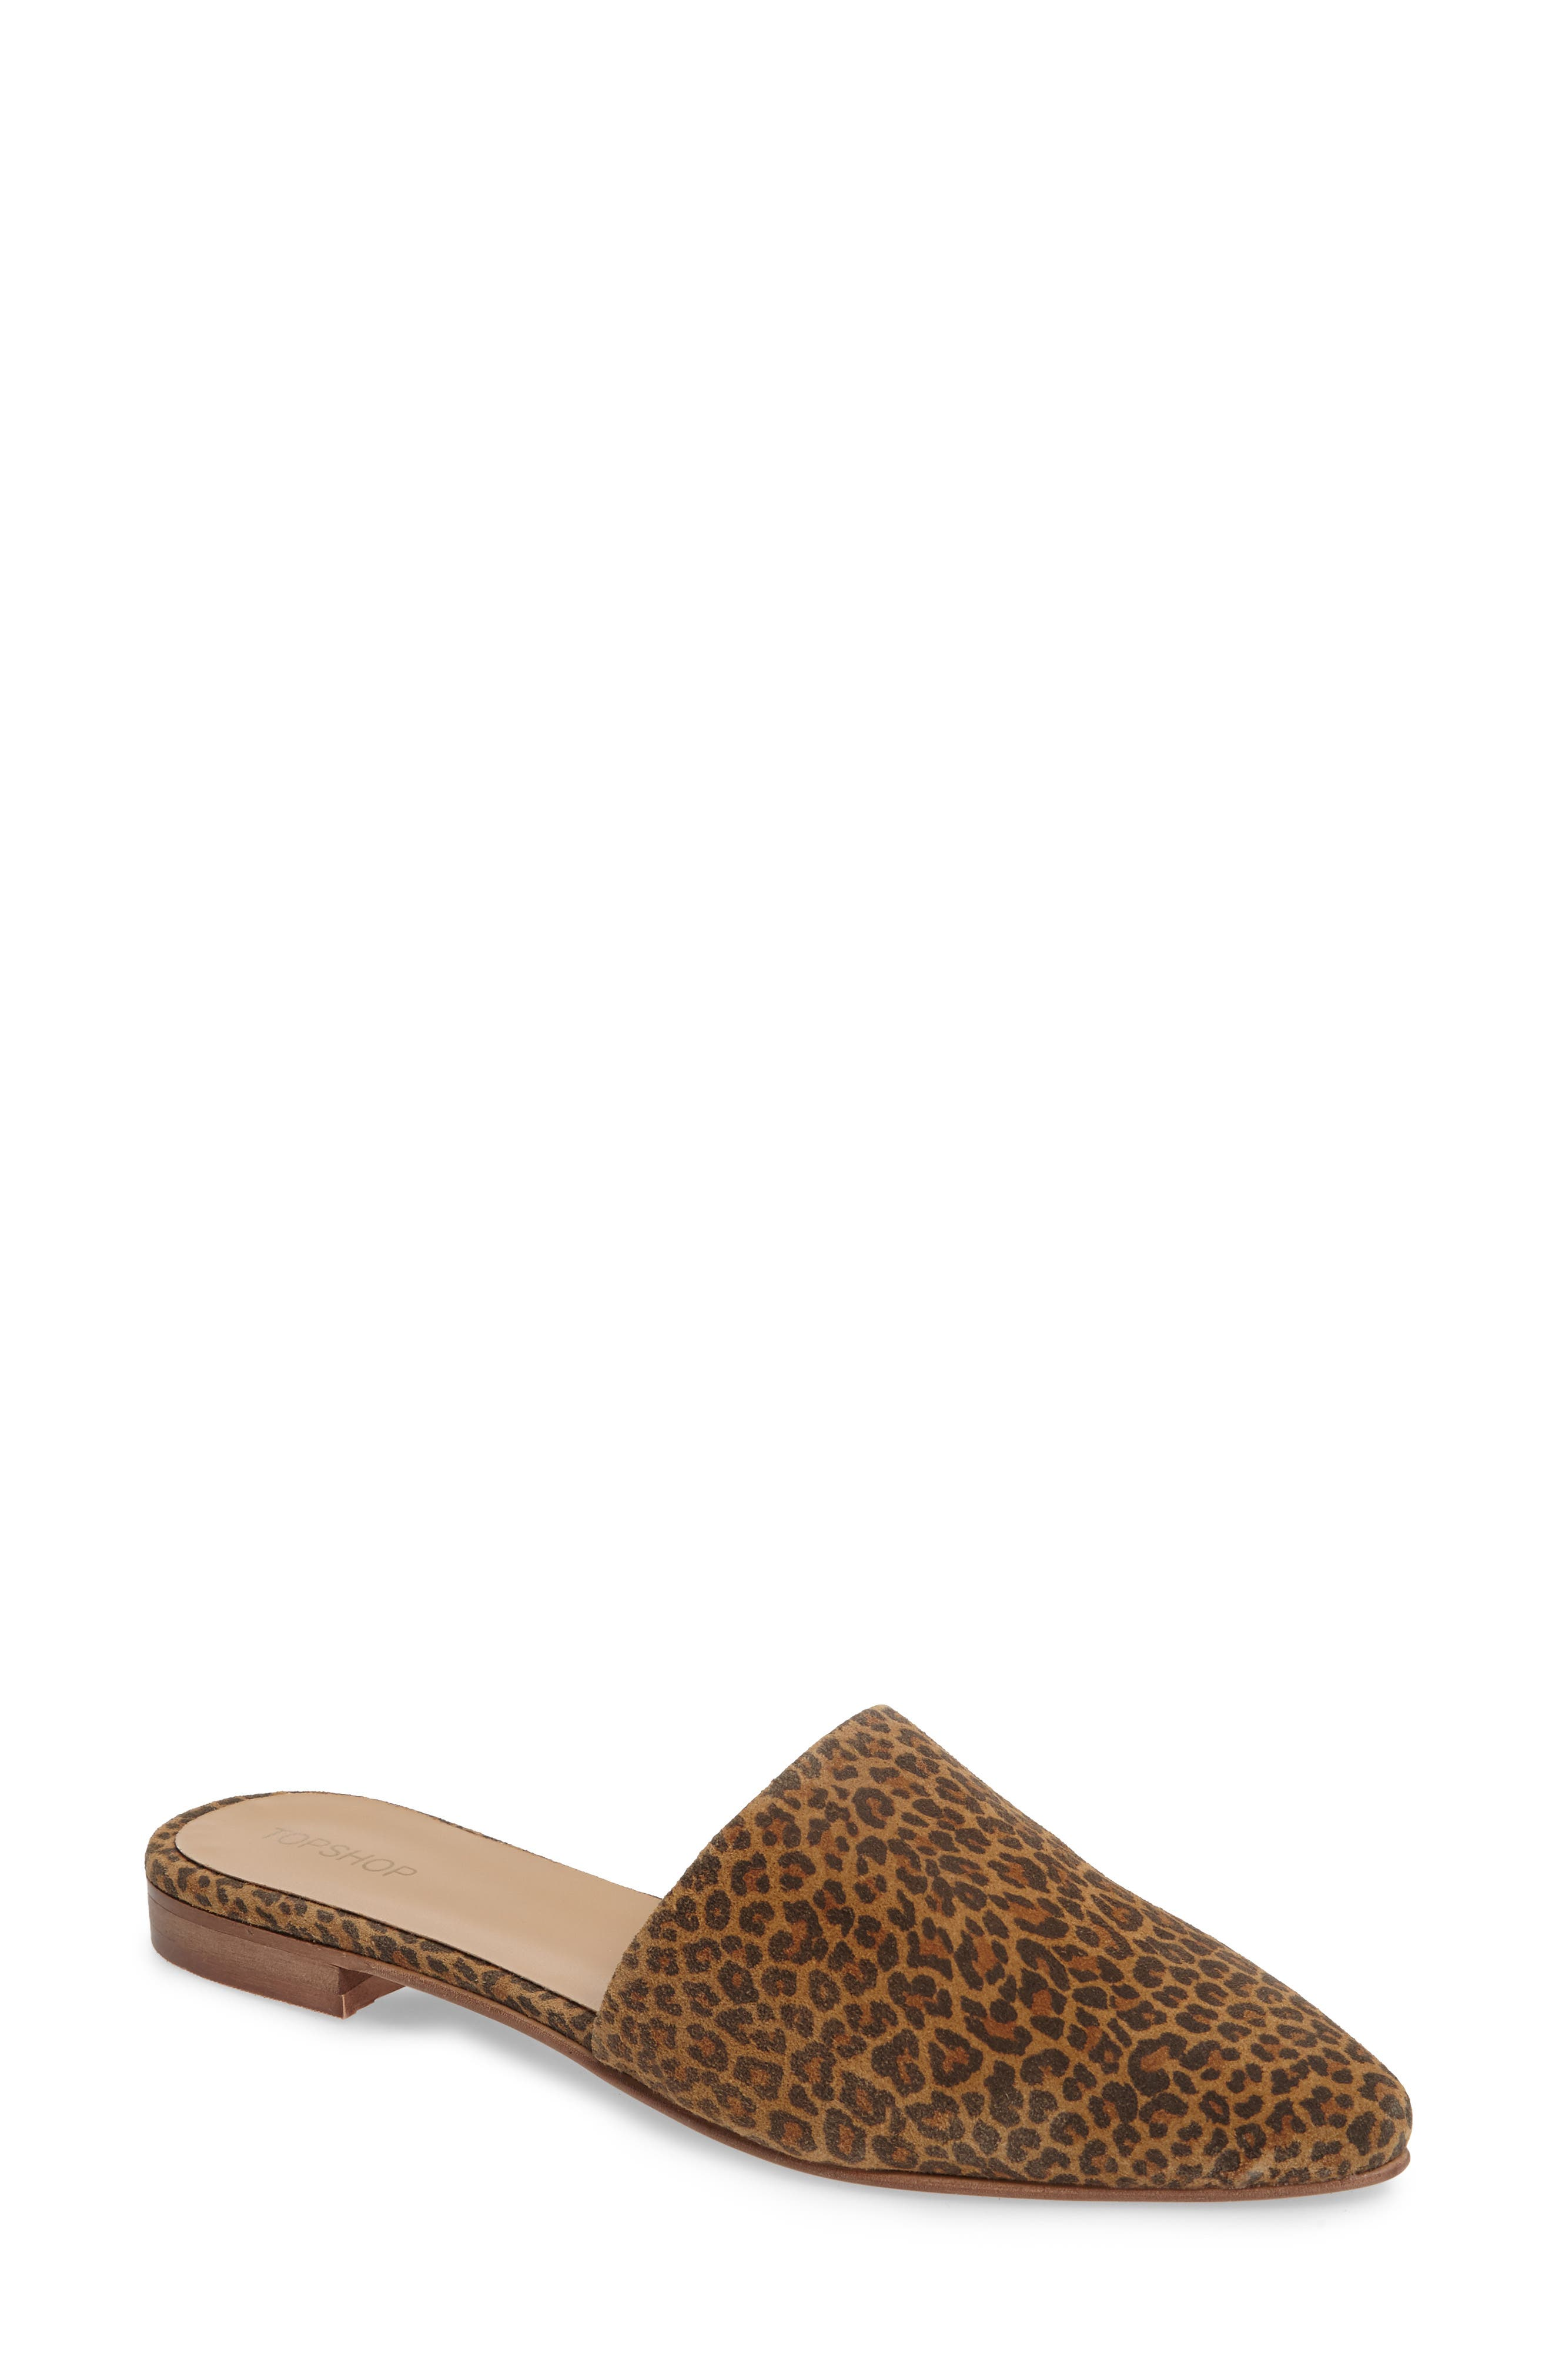 Alternate Image 1 Selected - Topshop Angelina Flat Mule (Women)